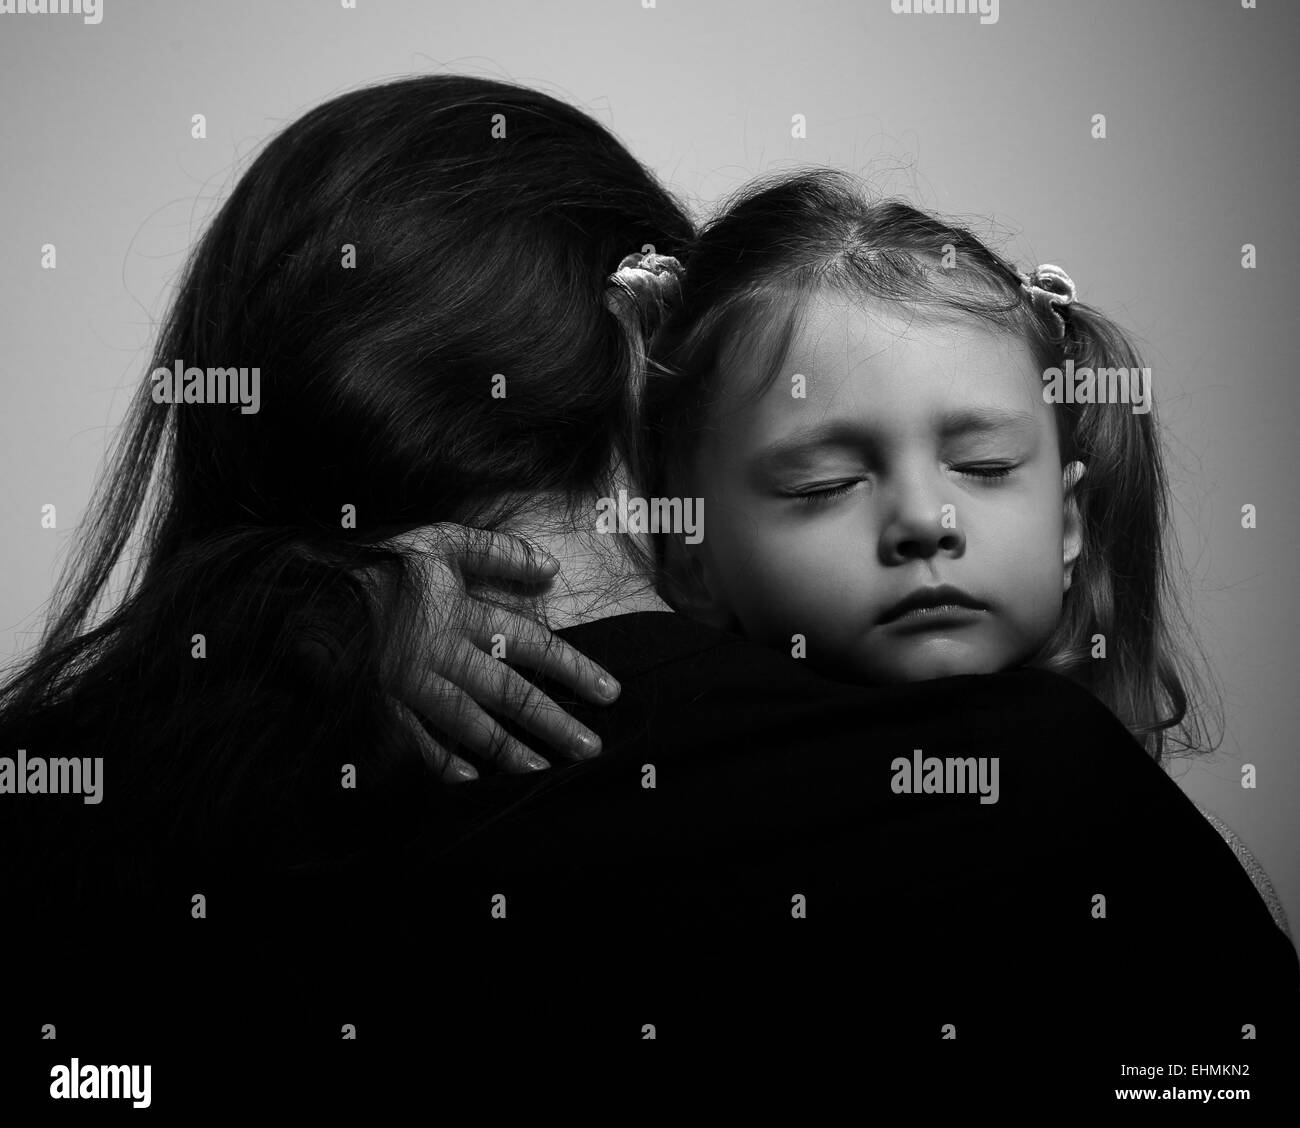 Depression daughter hugging her mother with sad face. Closeup portrait black and white - Stock Image